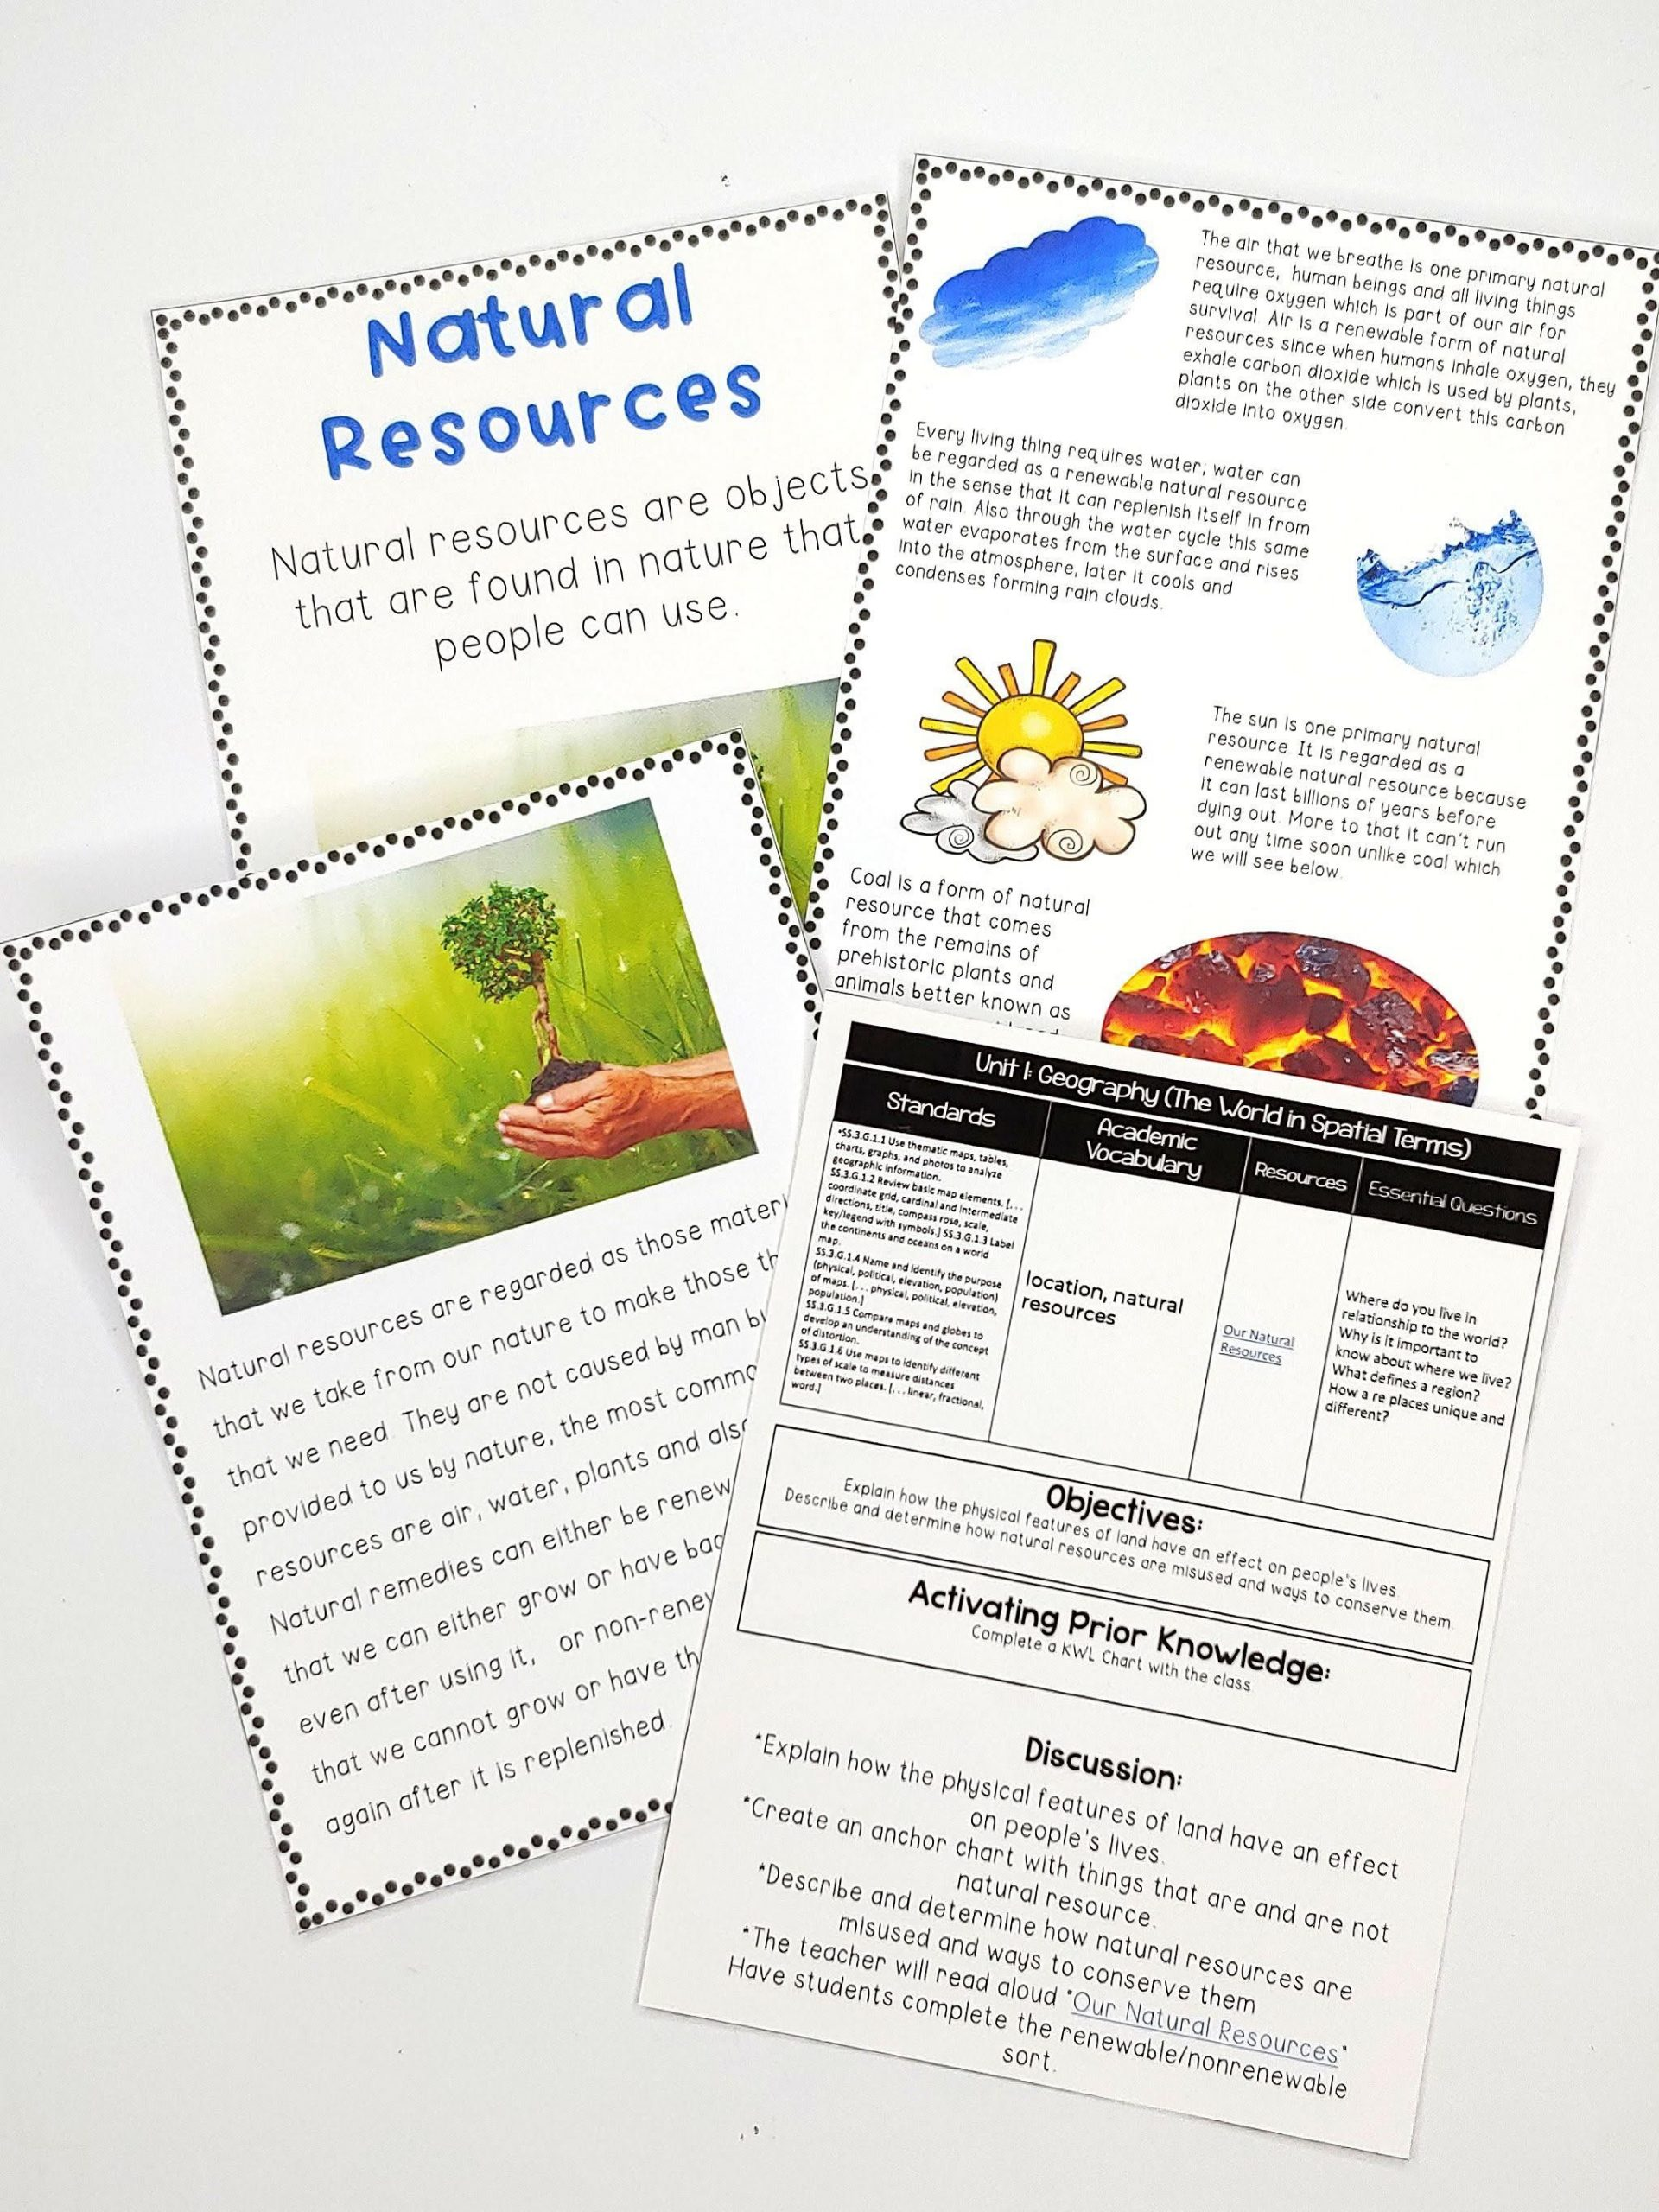 Natural Resources Worksheets 3rd Grade 3rd Grade social Stu S Unit